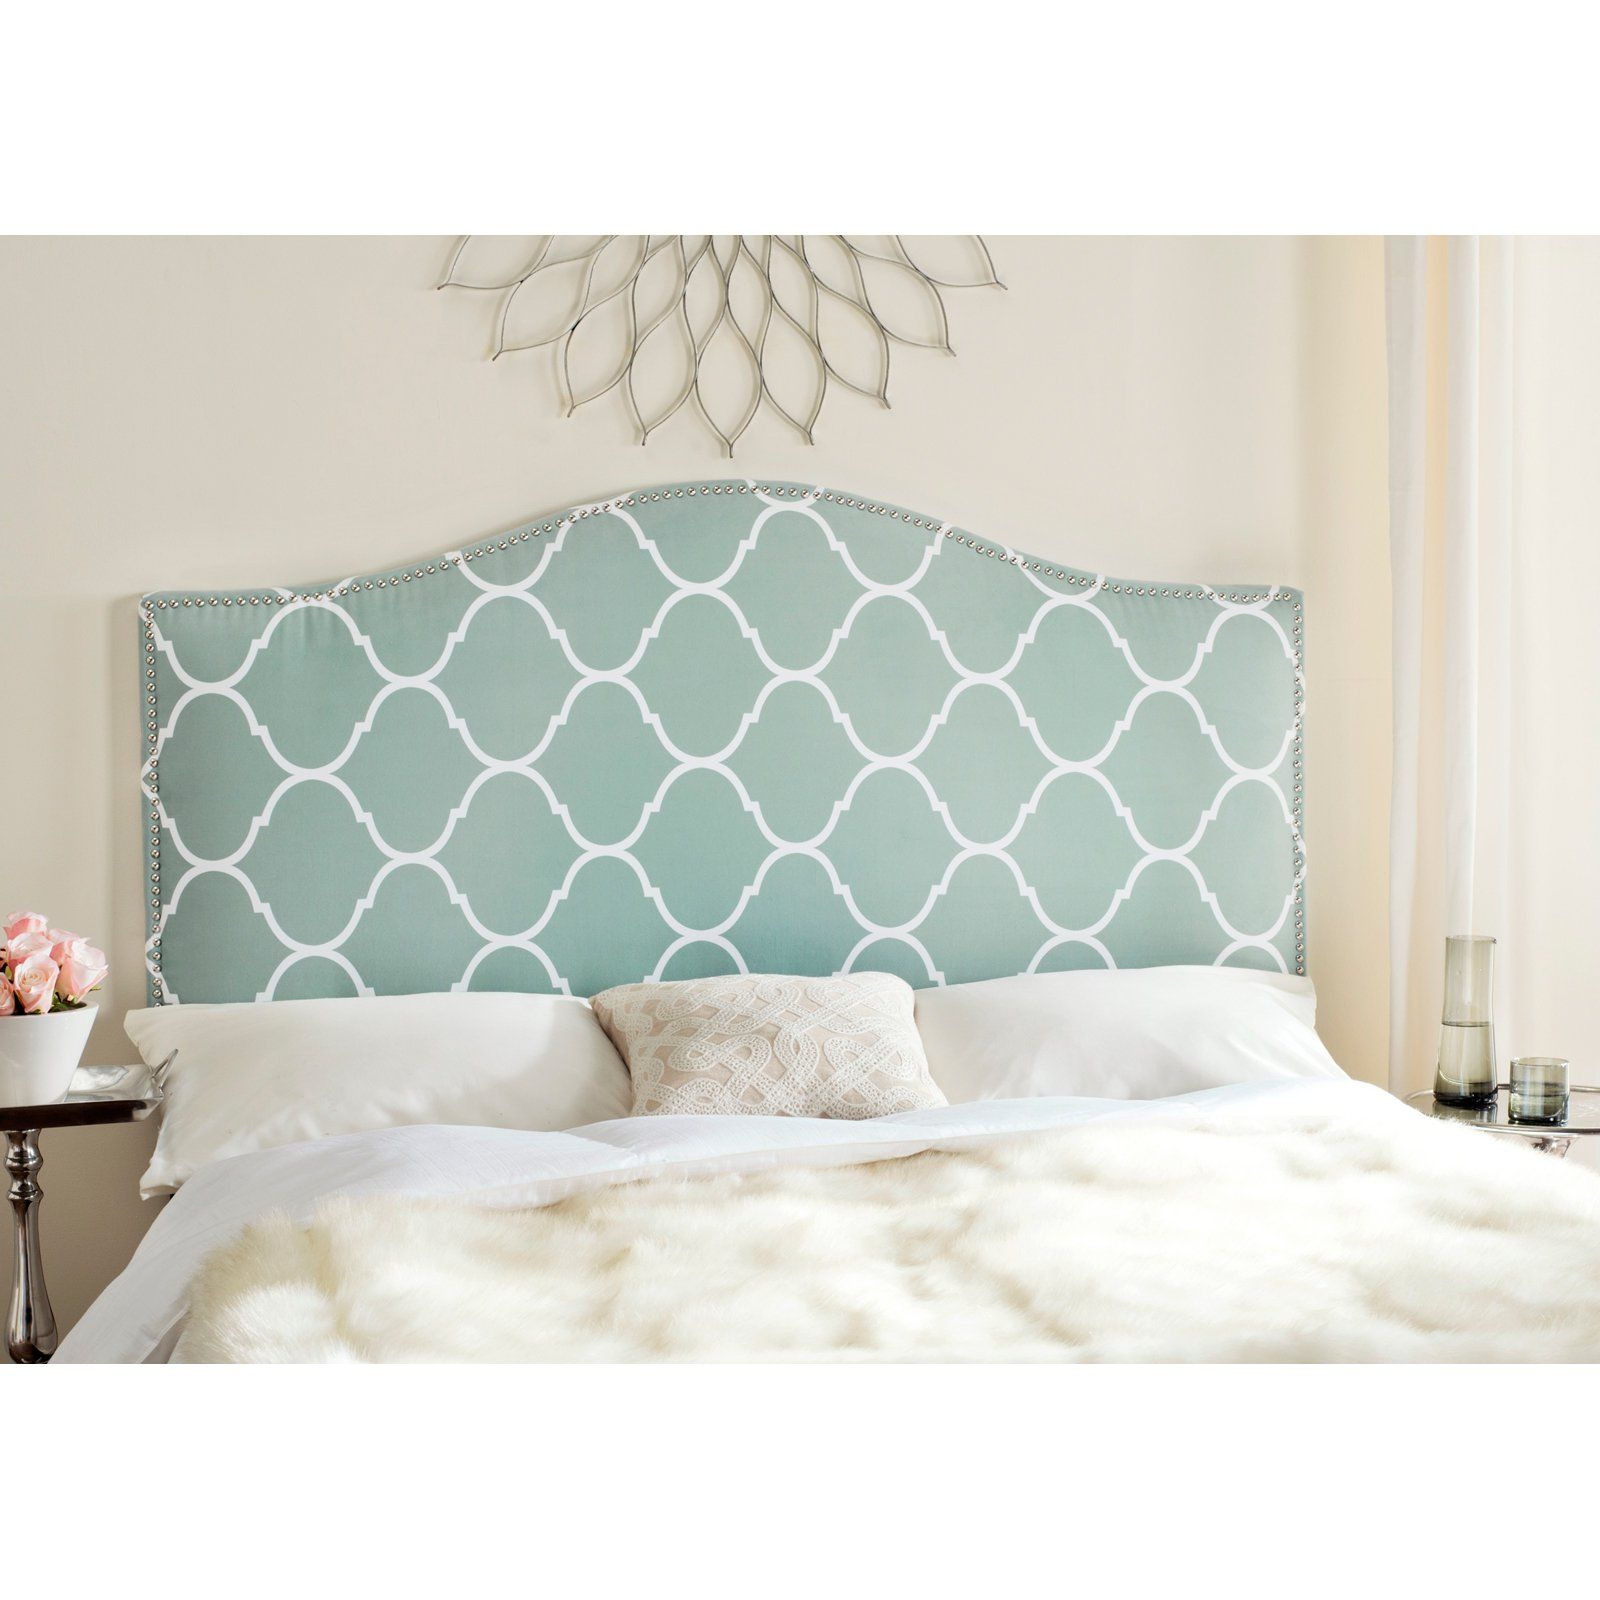 Safavieh Connie Lattice Upholstered Headboard - Subtly enhance your bed and  bedroom with the elegant Safavieh